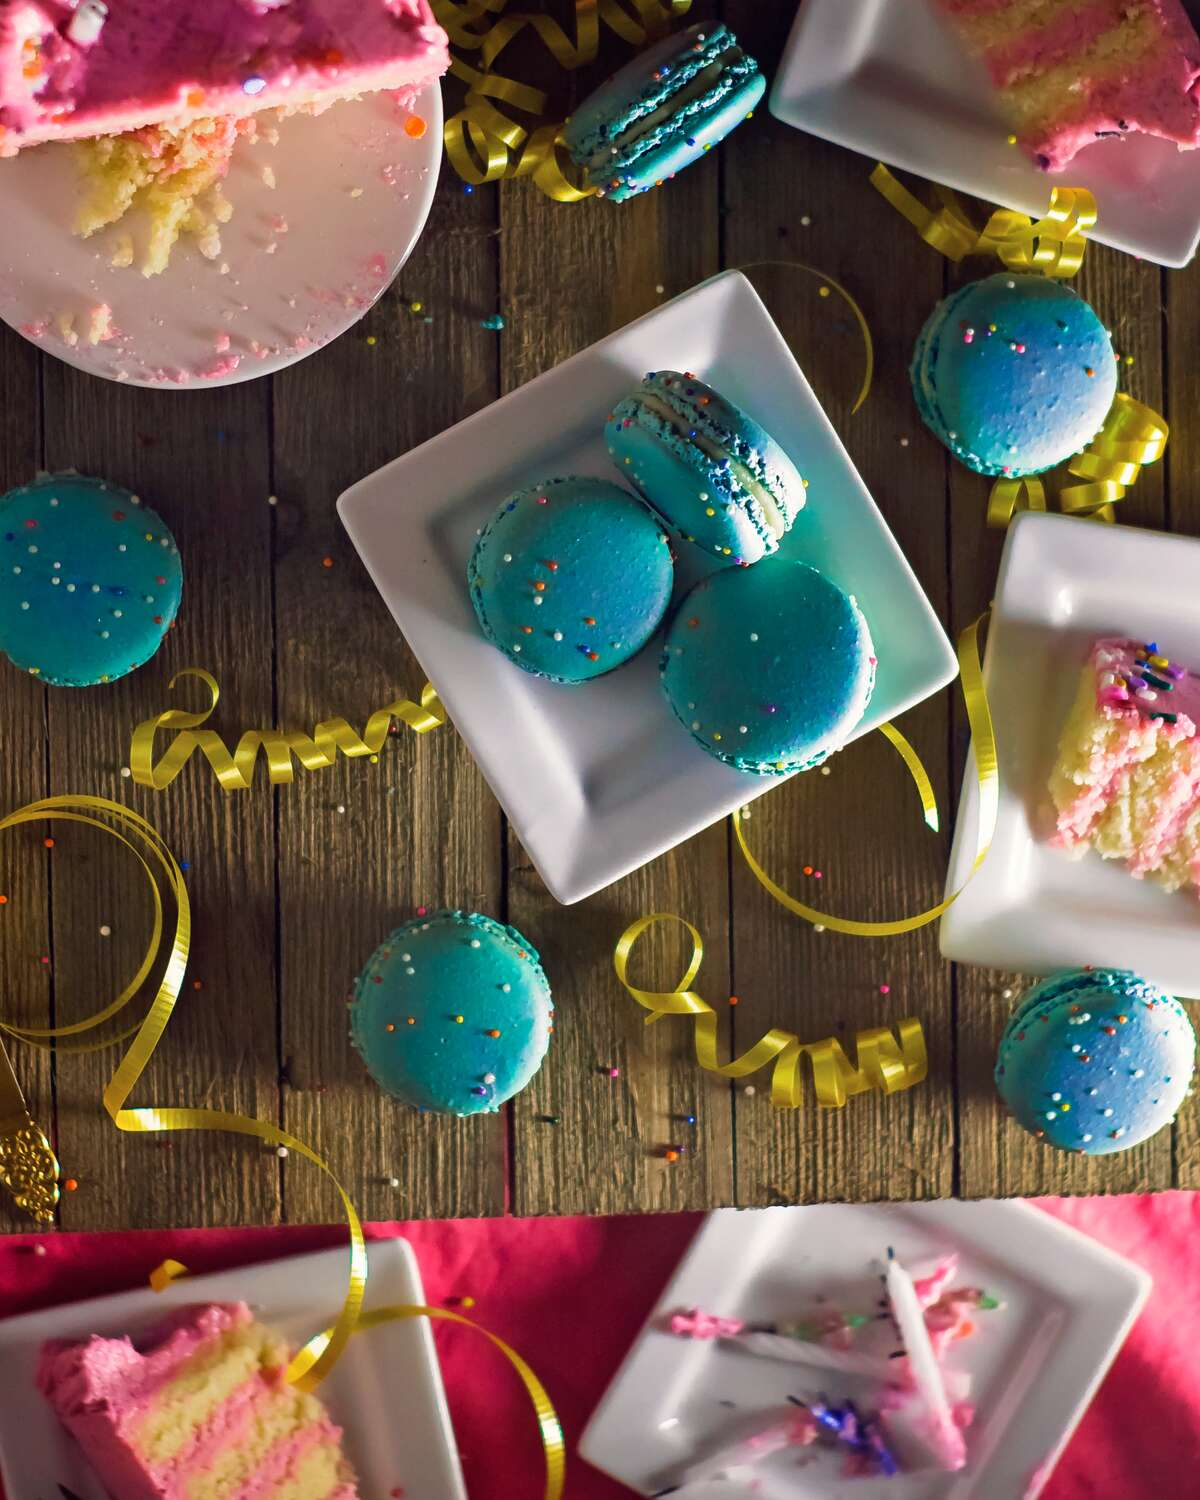 Bakery Lorraine is marking five years in the Alamo City by giving away a Birthday Cake Macaron with any purchase on Wednesday. The offer is only valid at The Pearl location, according to details posted online.